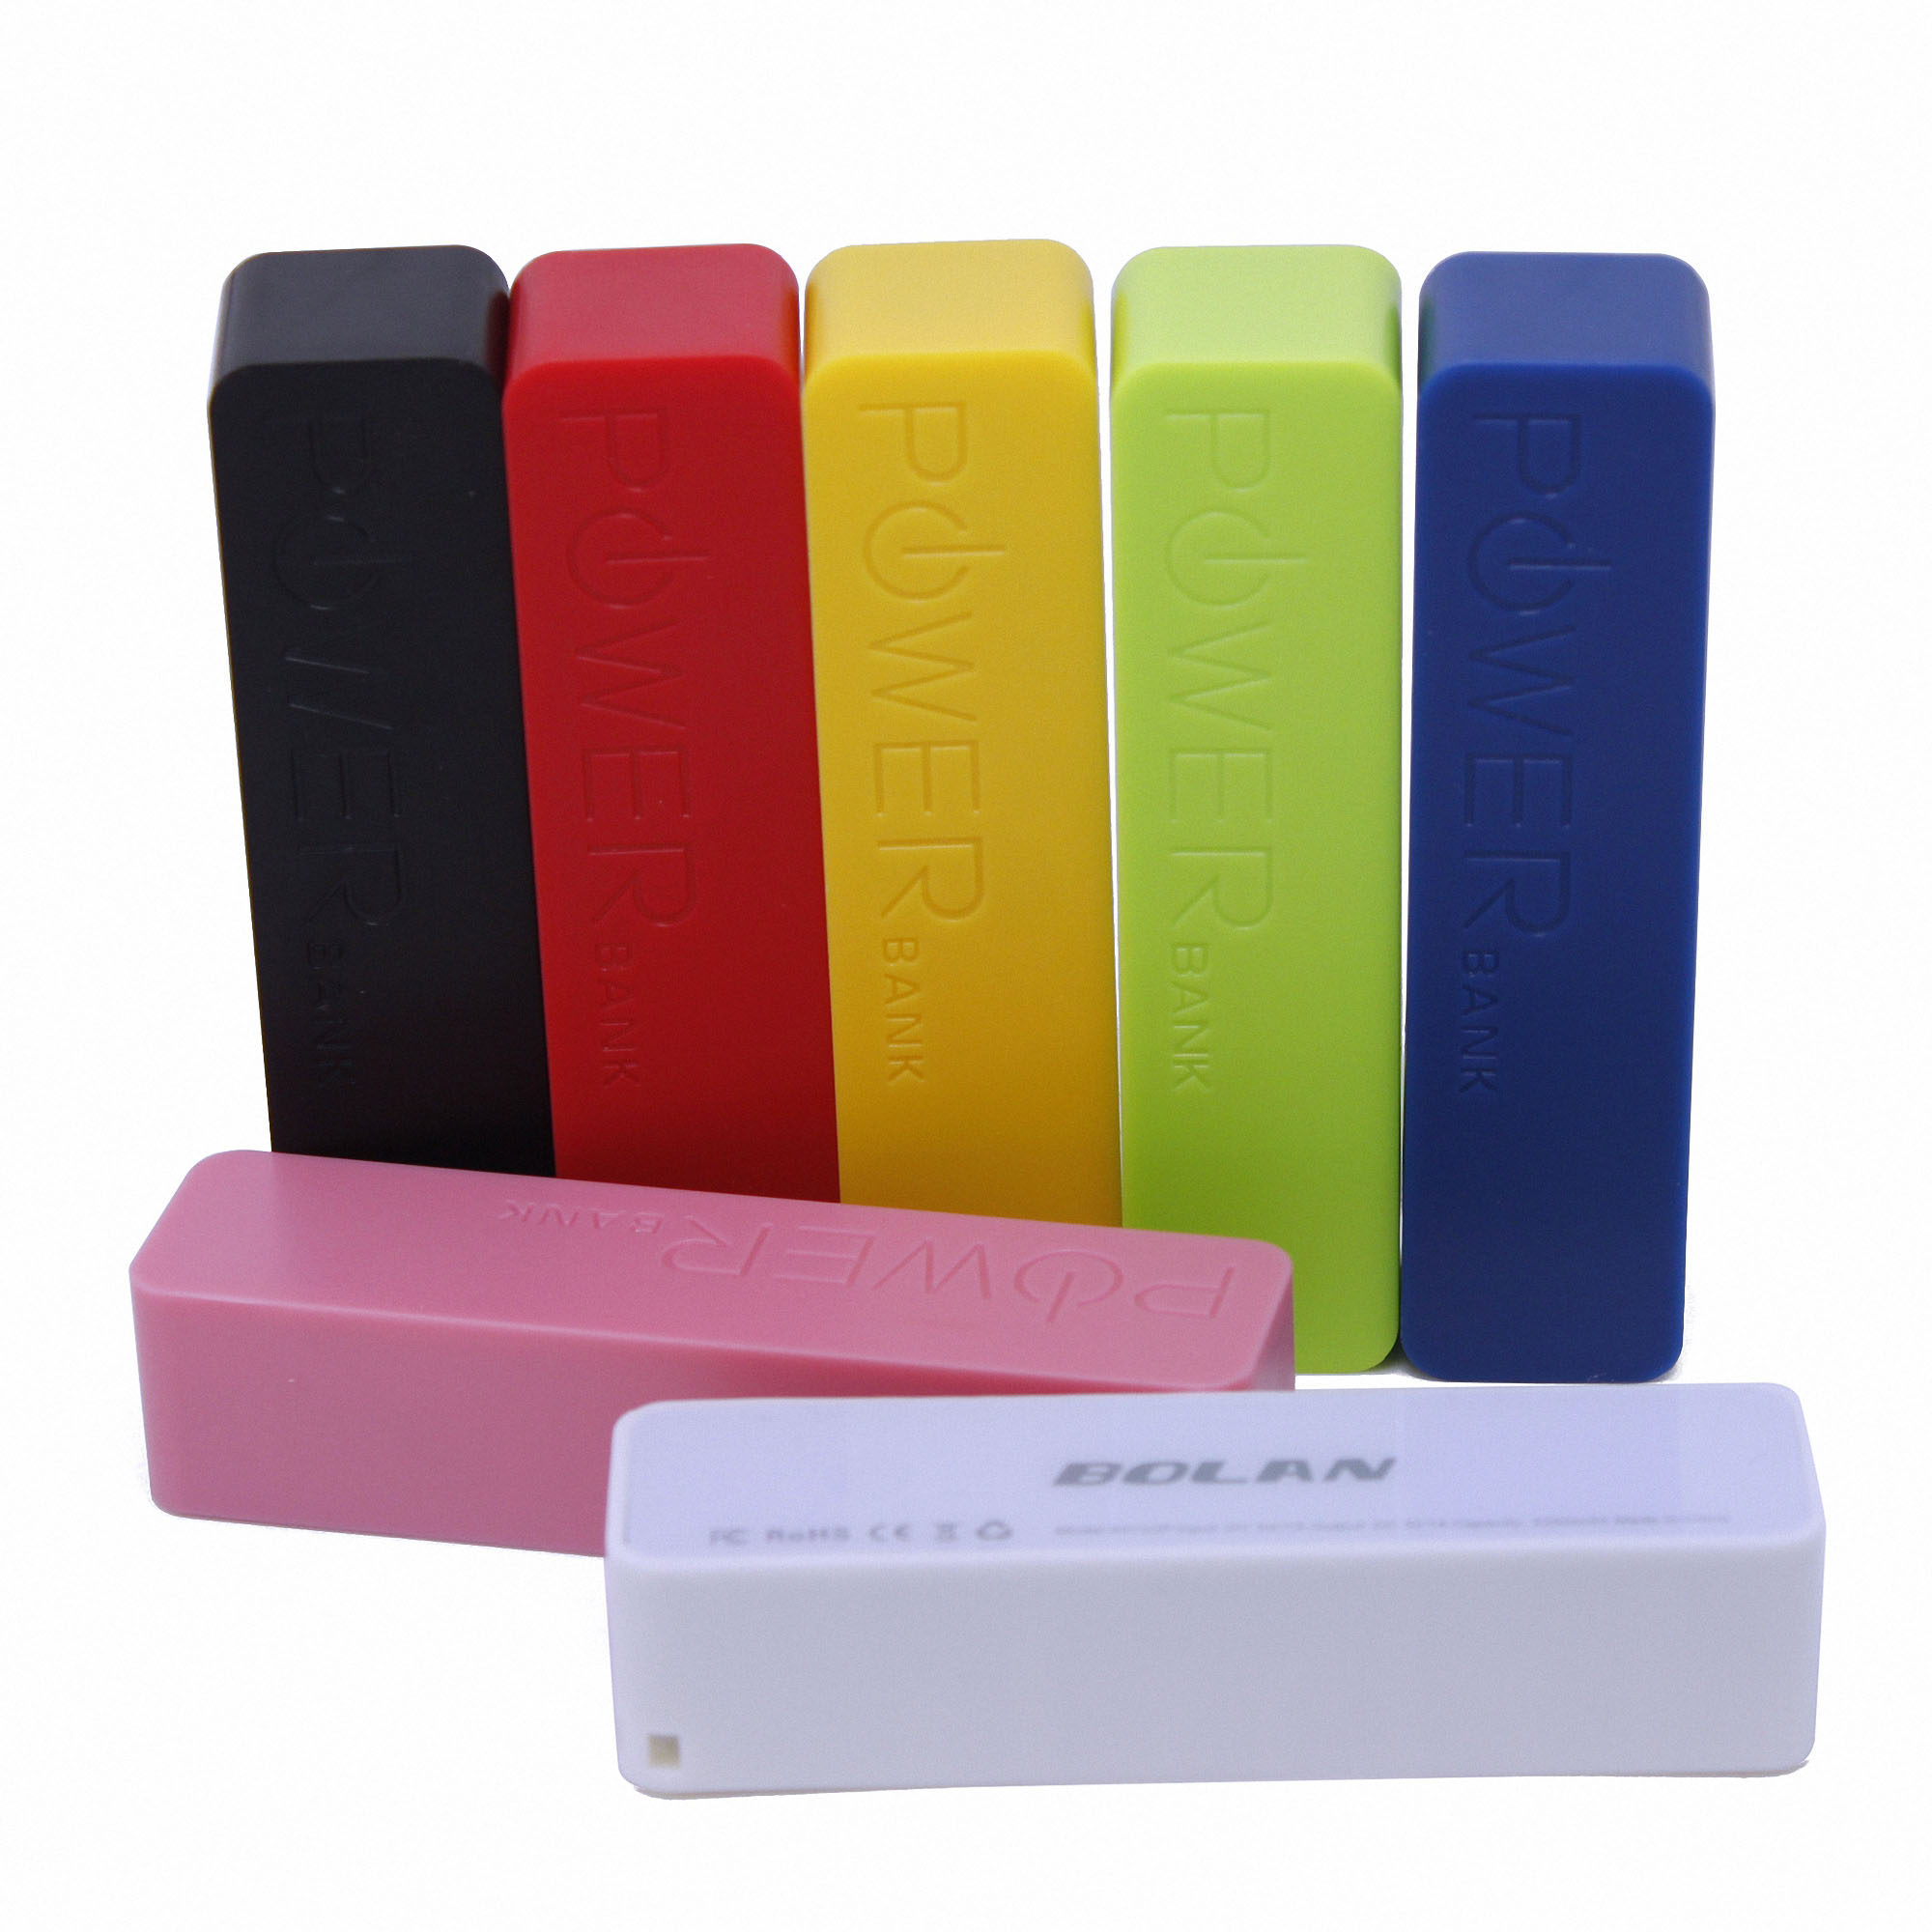 Bolan 2200mAh Portable External Battery Charger for Smartphones and other Digital Devices